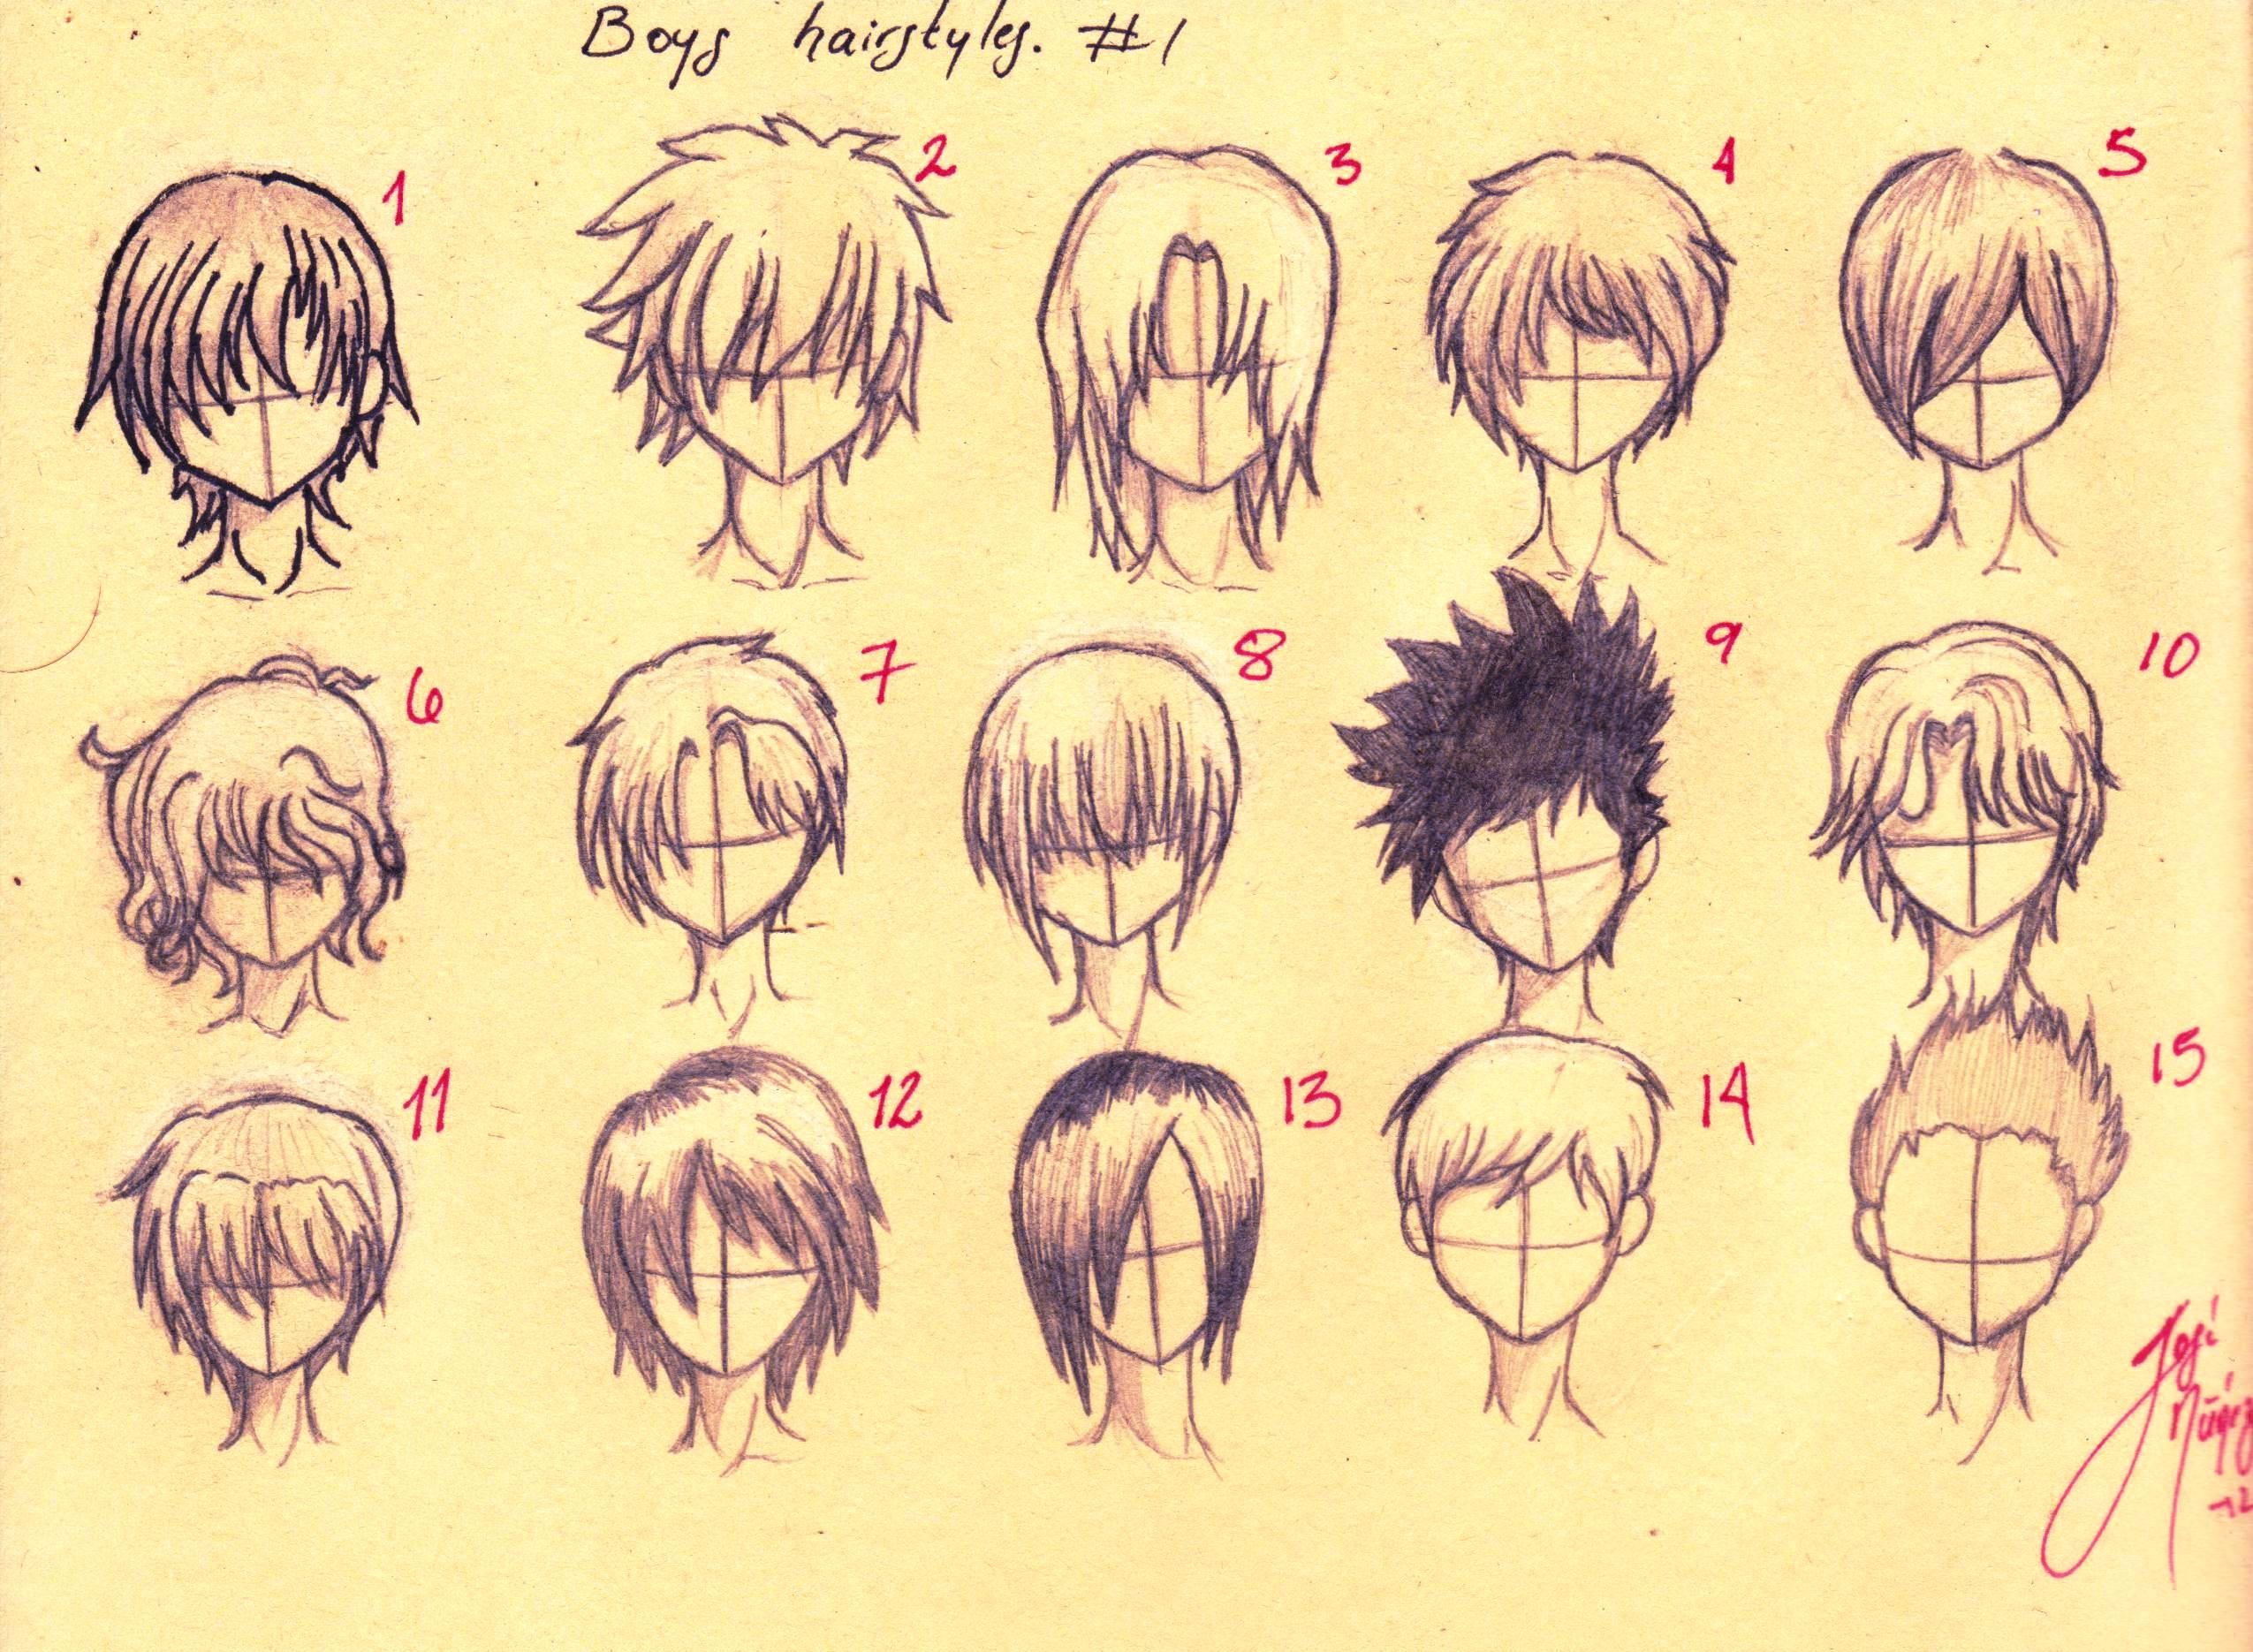 Anime Boys Hairstyles: All Fifteen